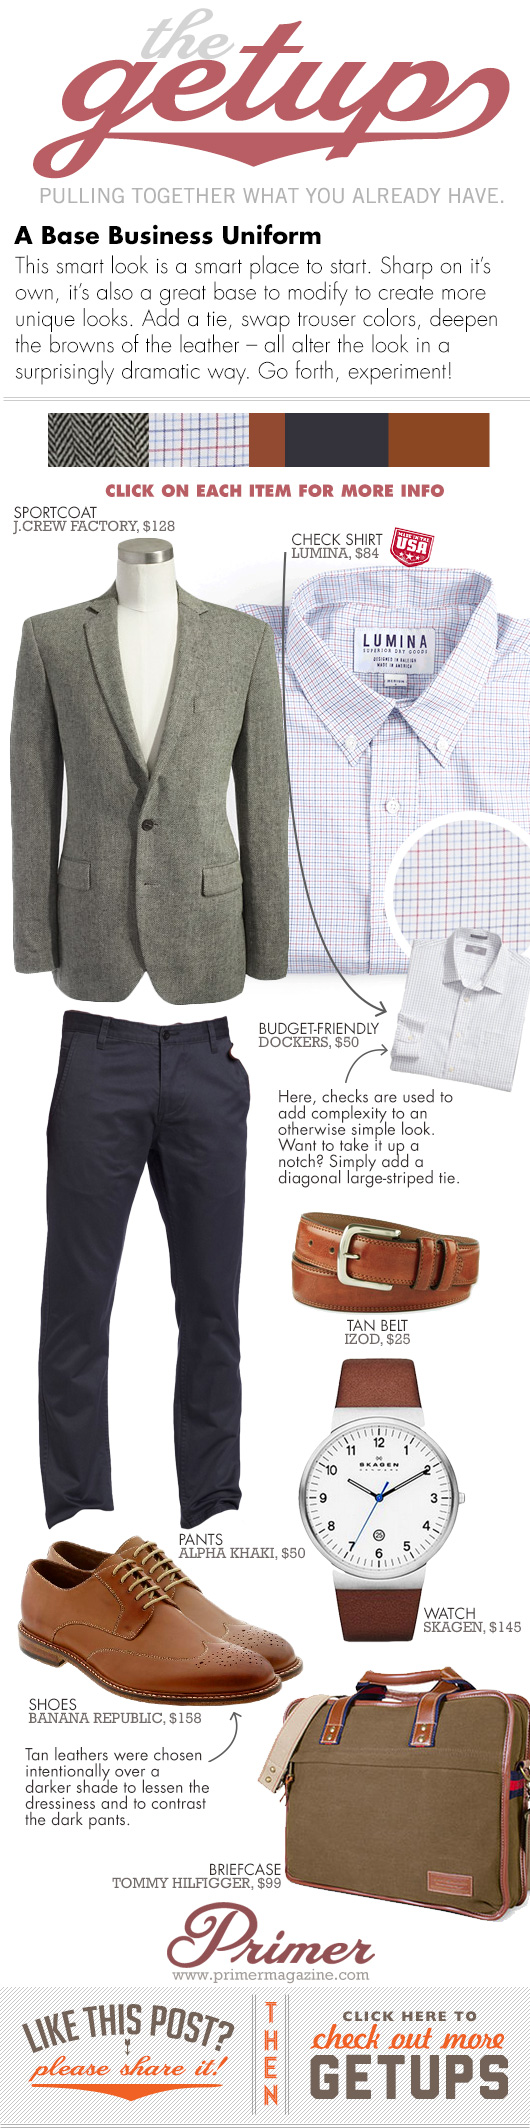 Getup Base Business Uniform - Tweed blazer, check shirt, blue pants